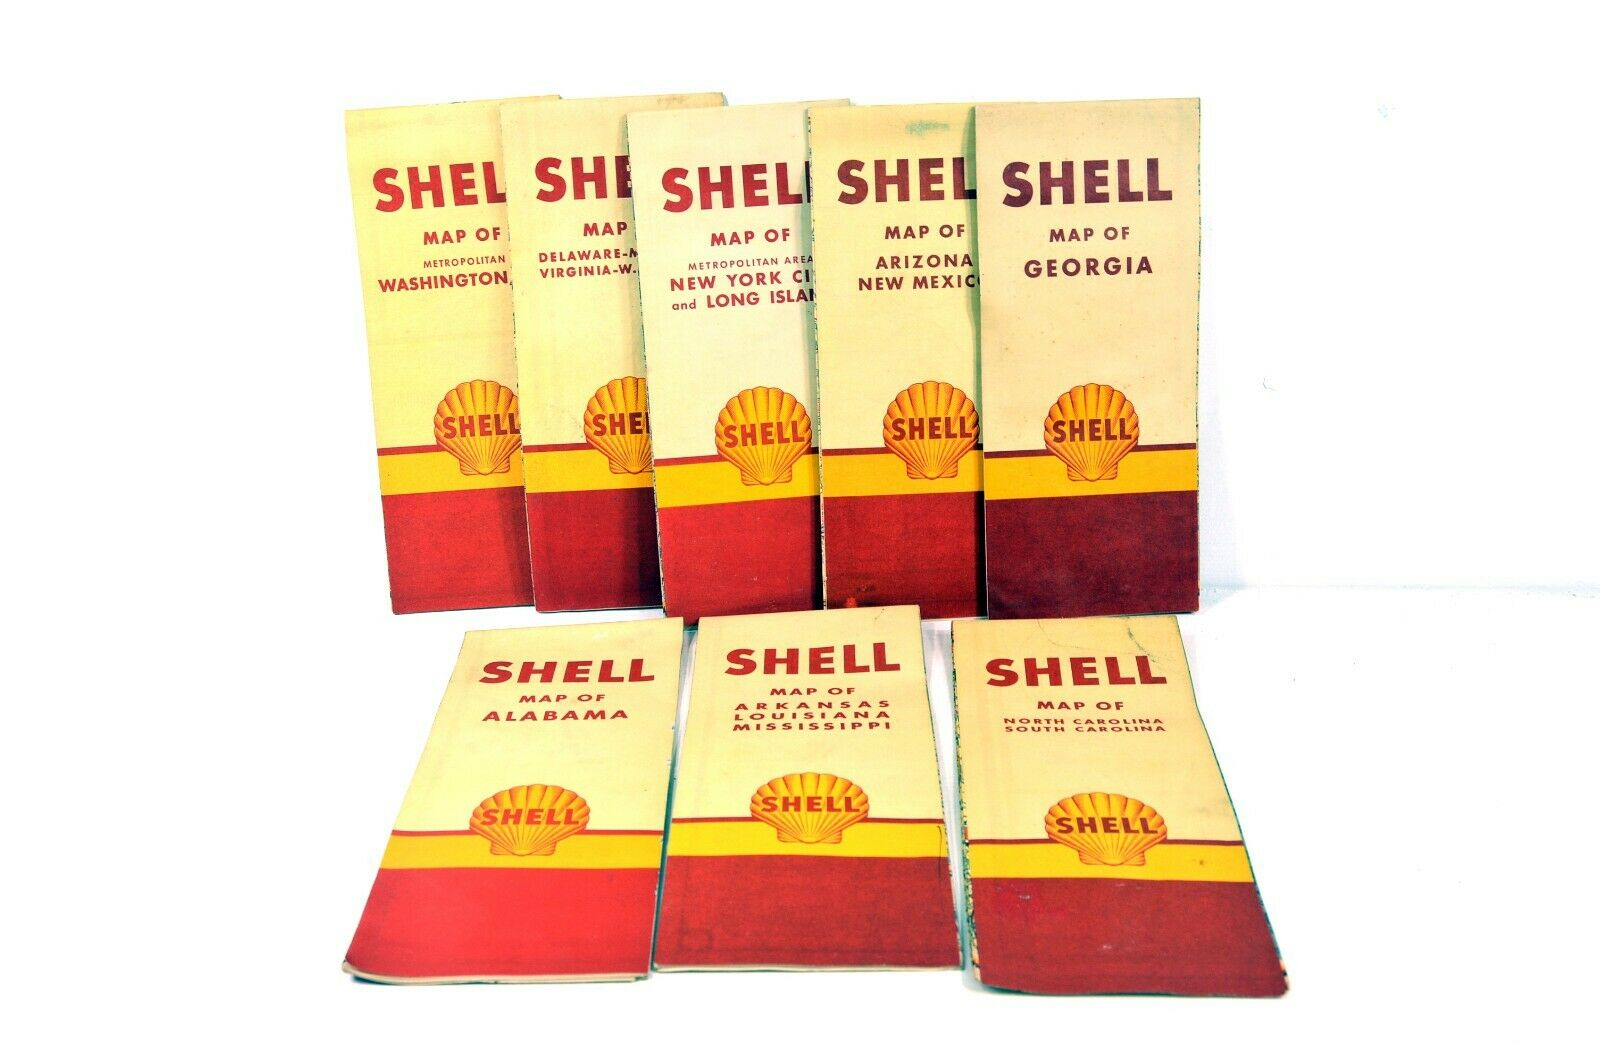 Vintage Shell Gasoline 1950s US City Metro Street Road Maps - NYC Washington